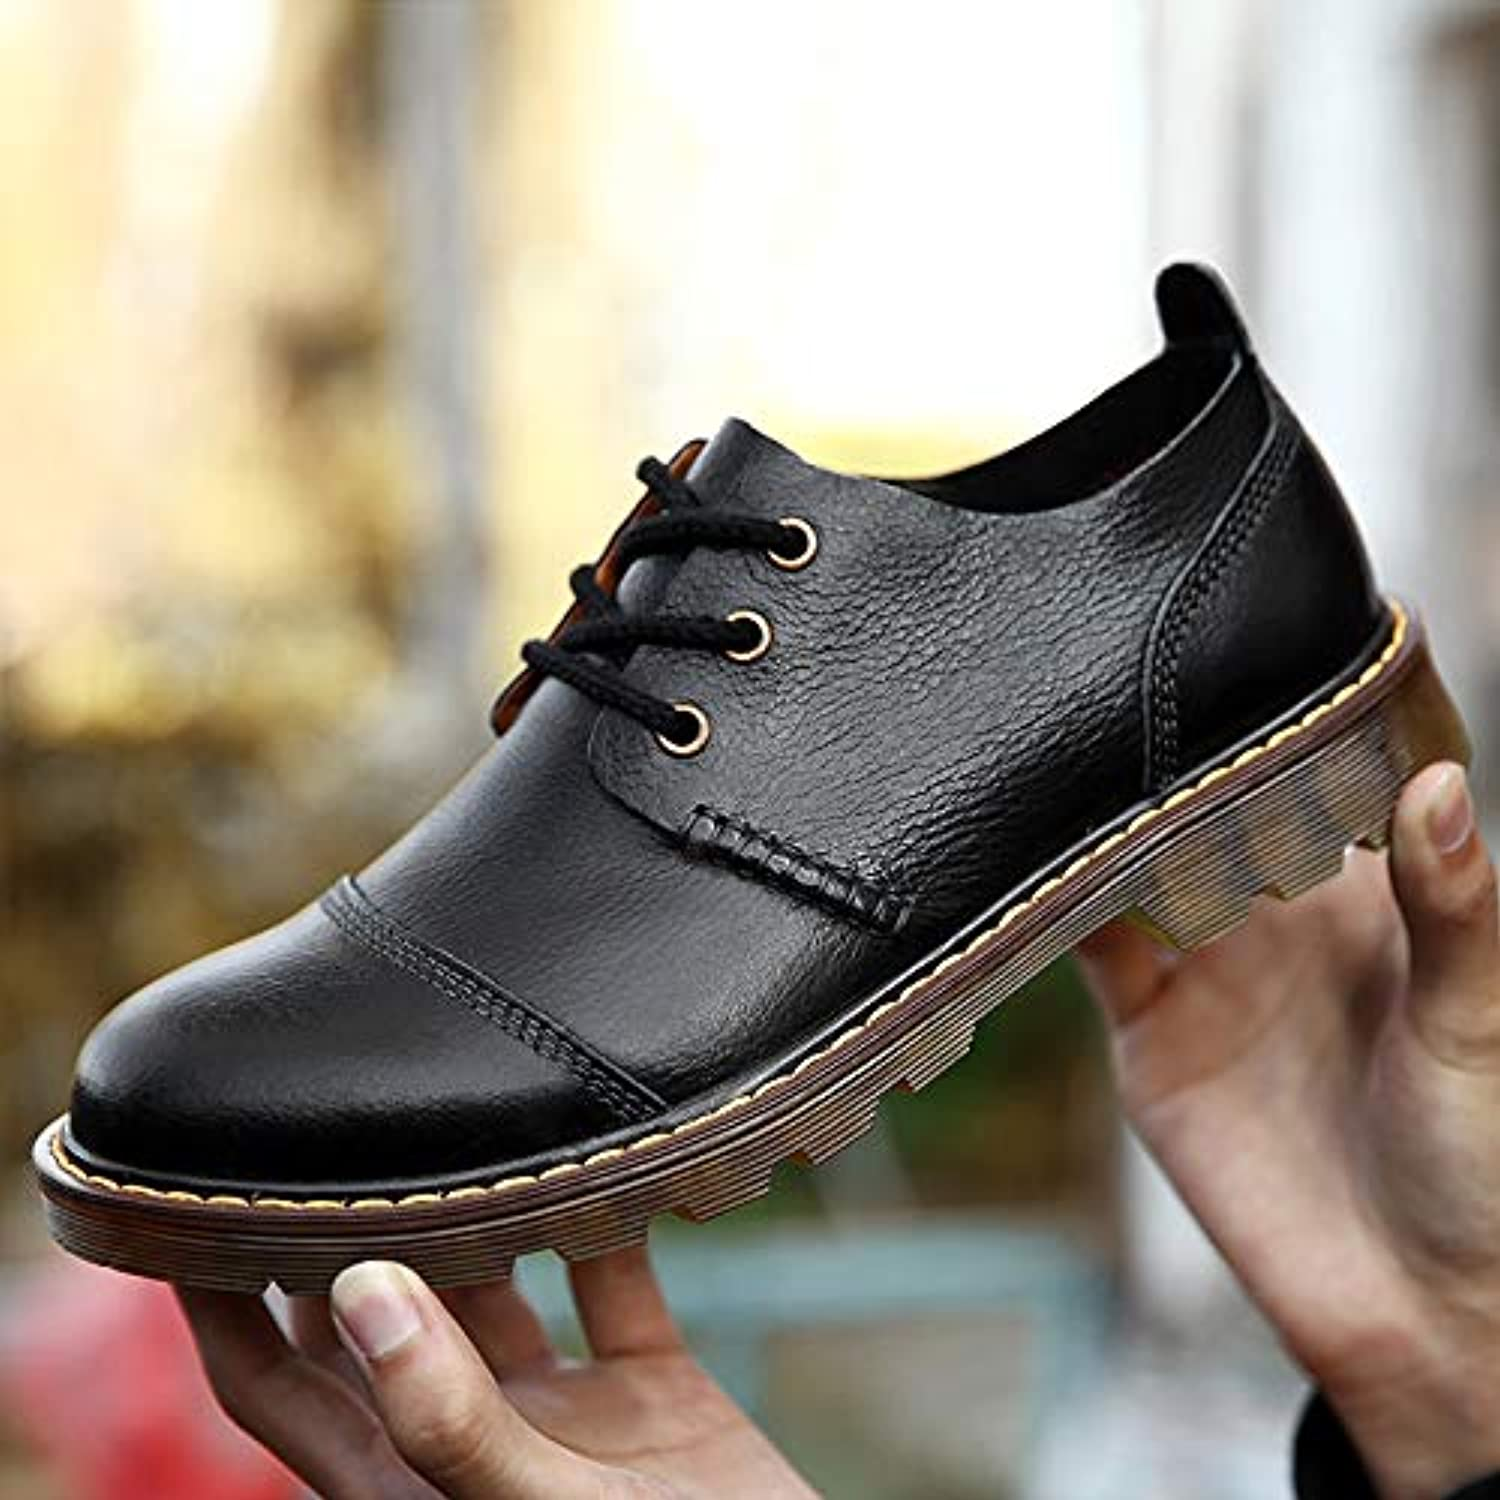 LOVDRAM Men'S shoes Large Size Martin shoes Men'S Casual shoes Wear Non-Slip Leather Tooling Big Head Low To Help Fashion Men'S shoes